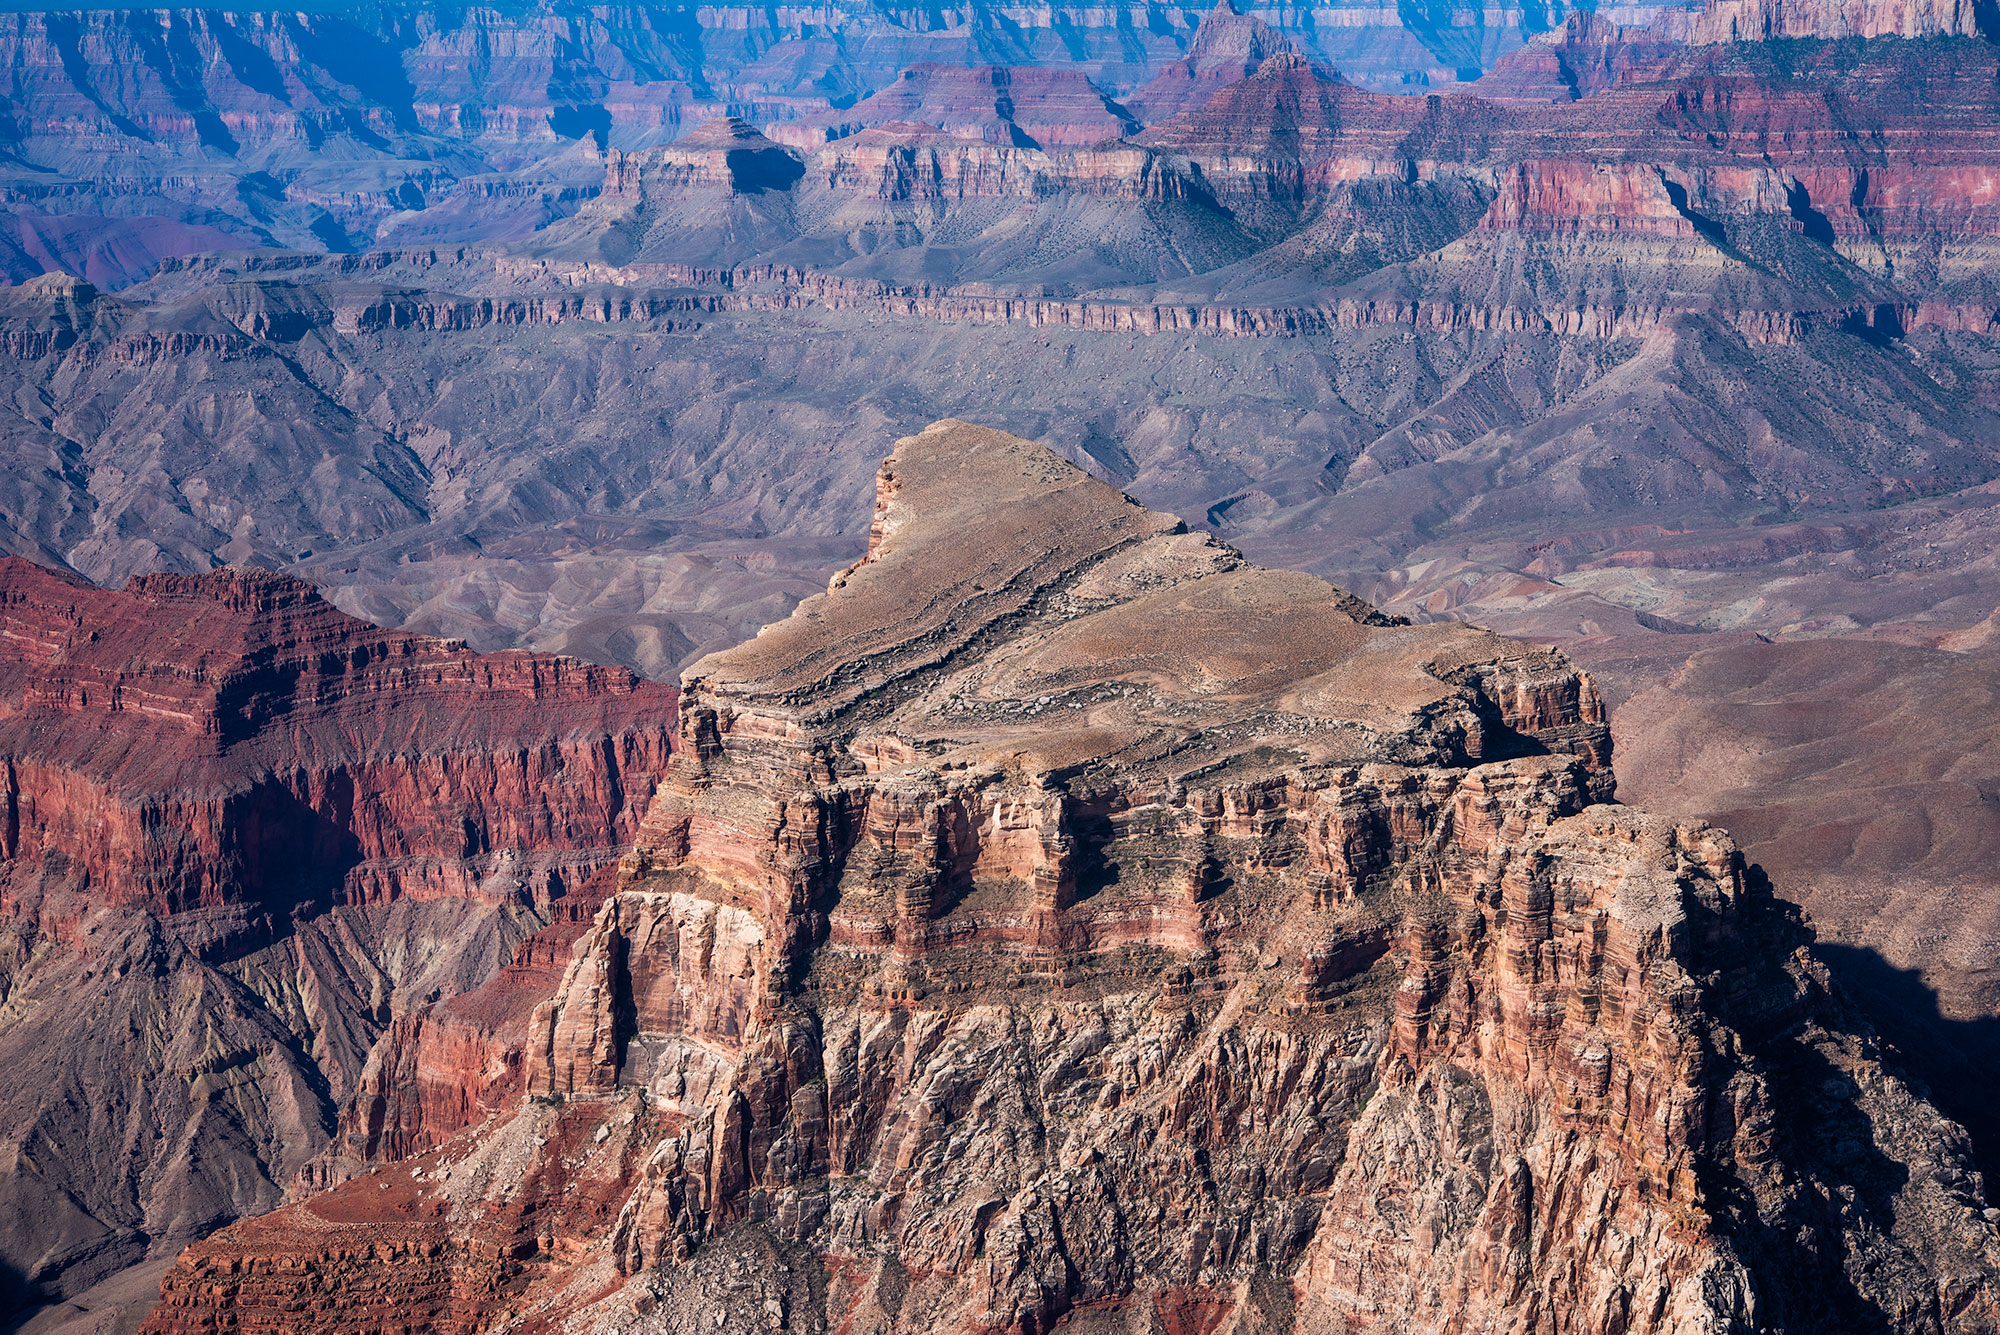 Fine art aerial and landscape photography of the Grand Canyon.